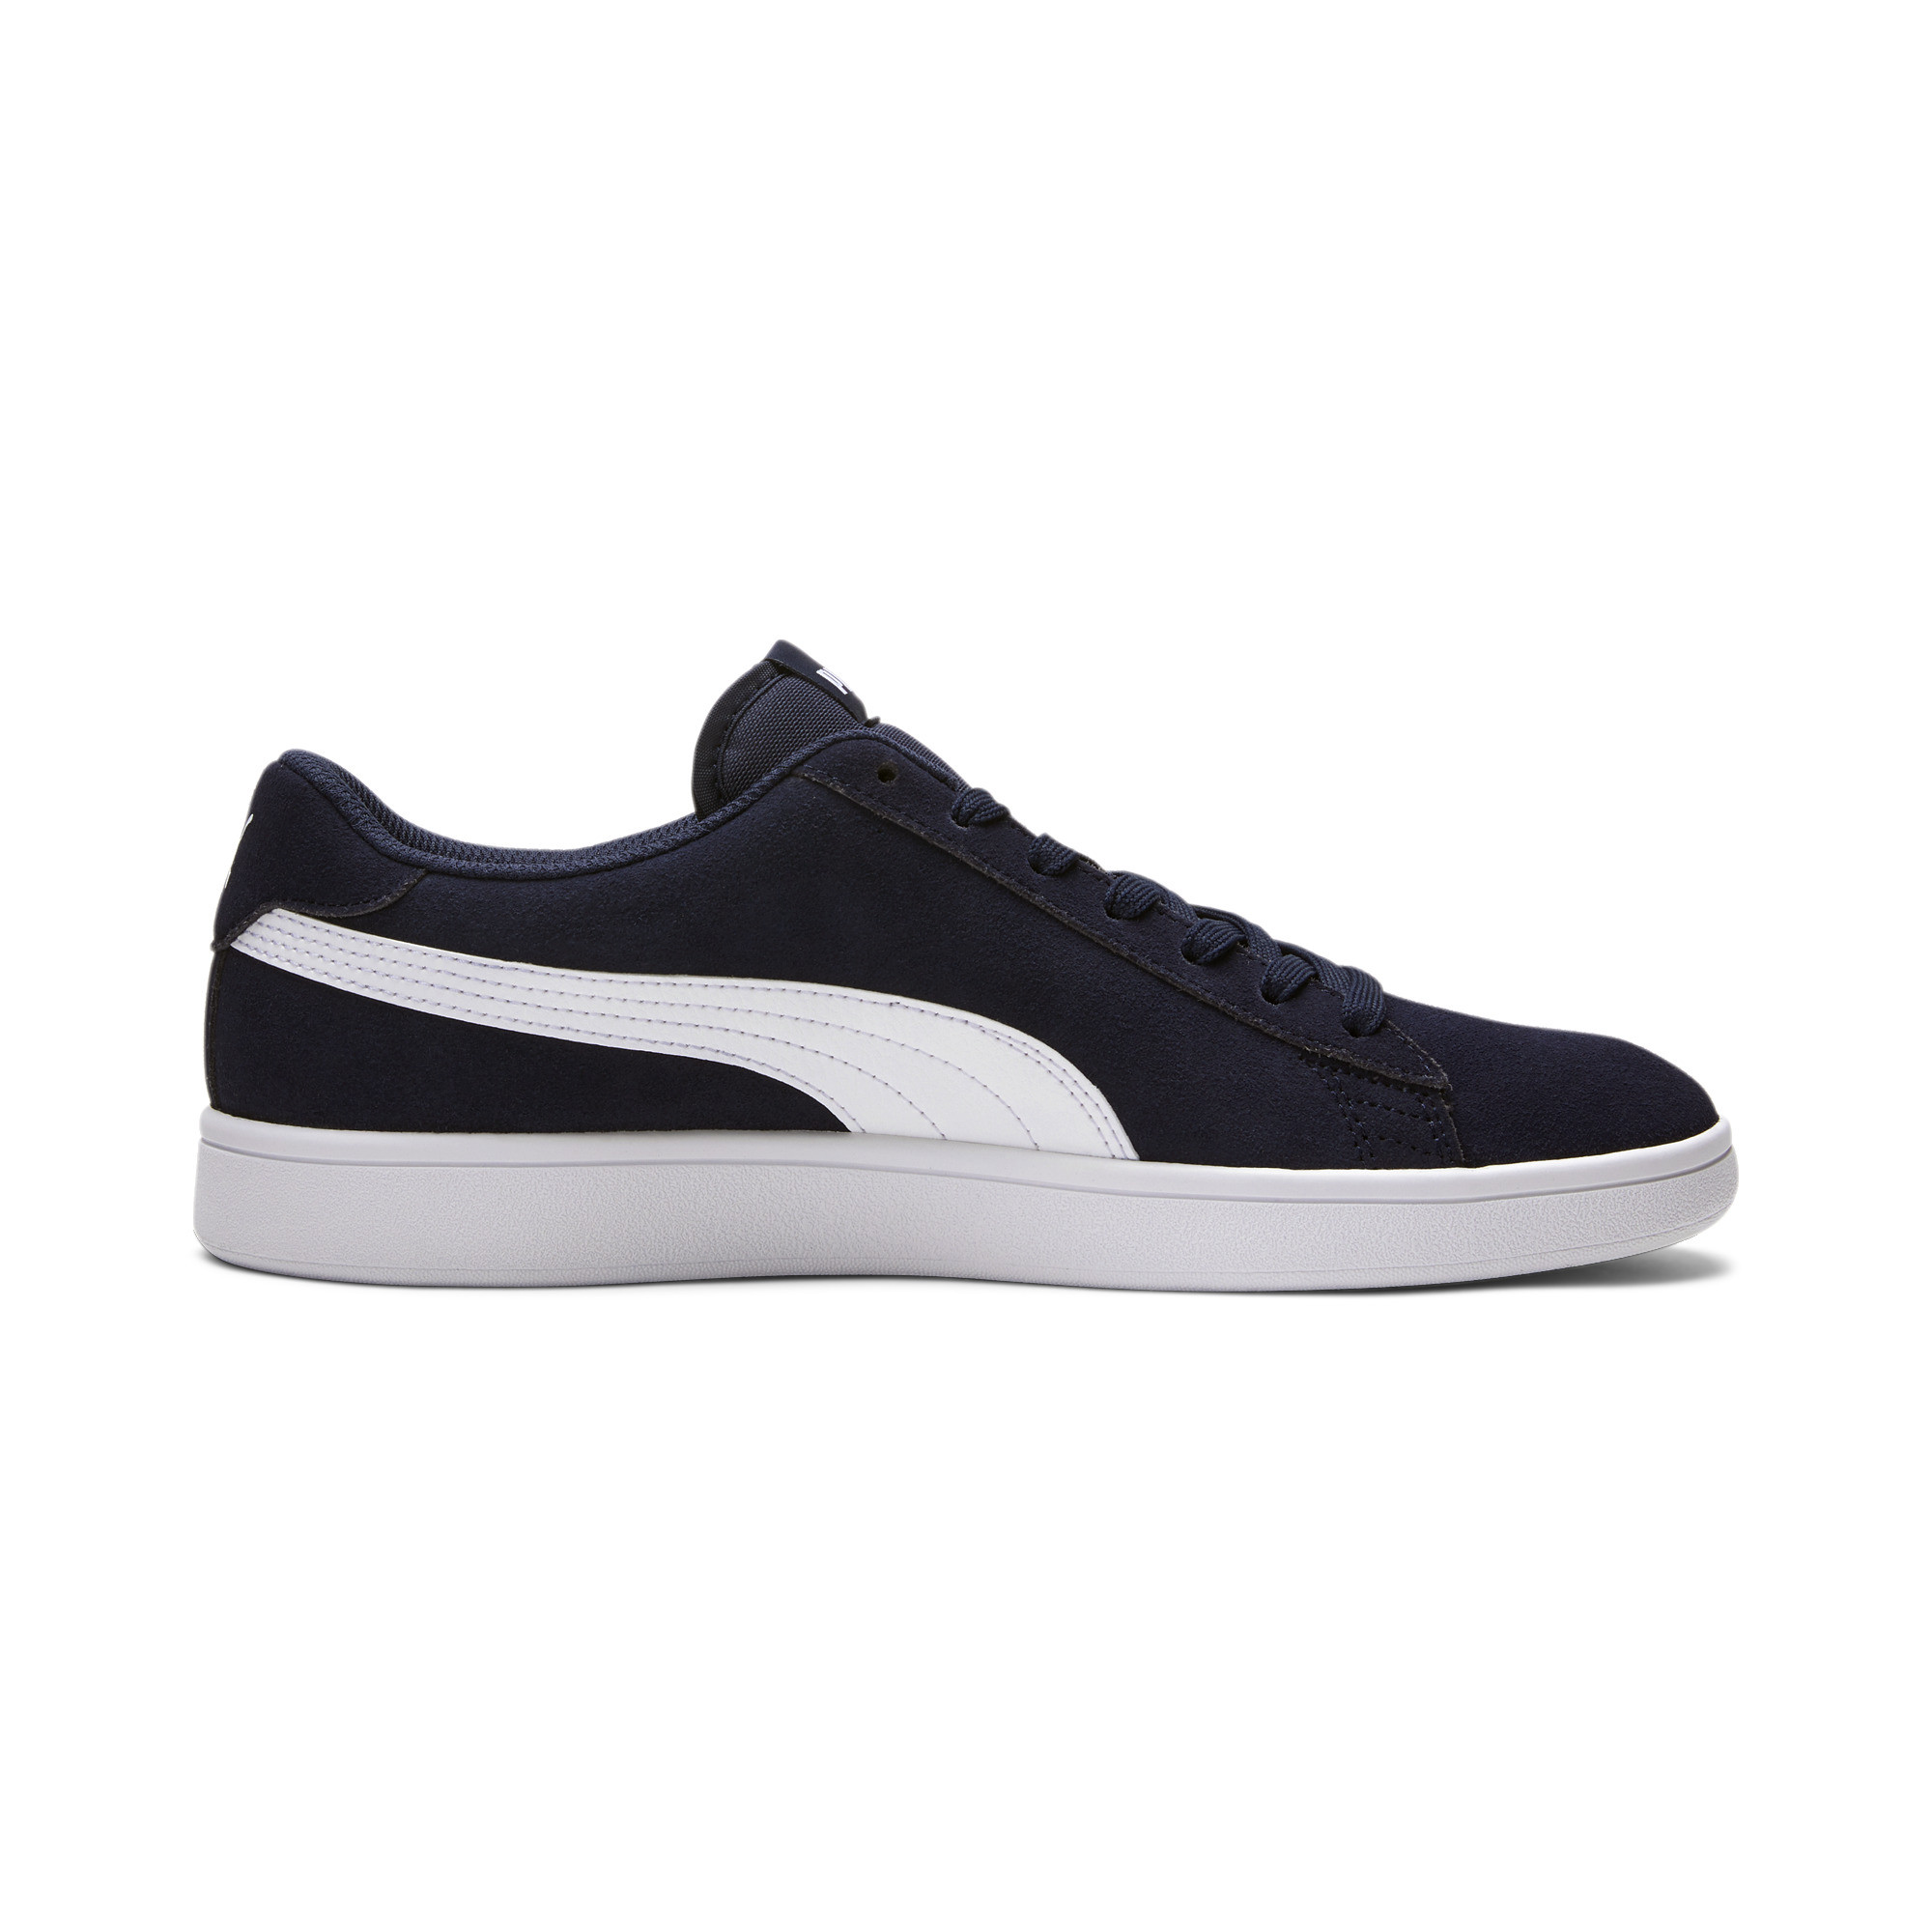 PUMA-PUMA-Smash-v2-Men-039-s-Sneakers-Men-Shoe-Basics thumbnail 17